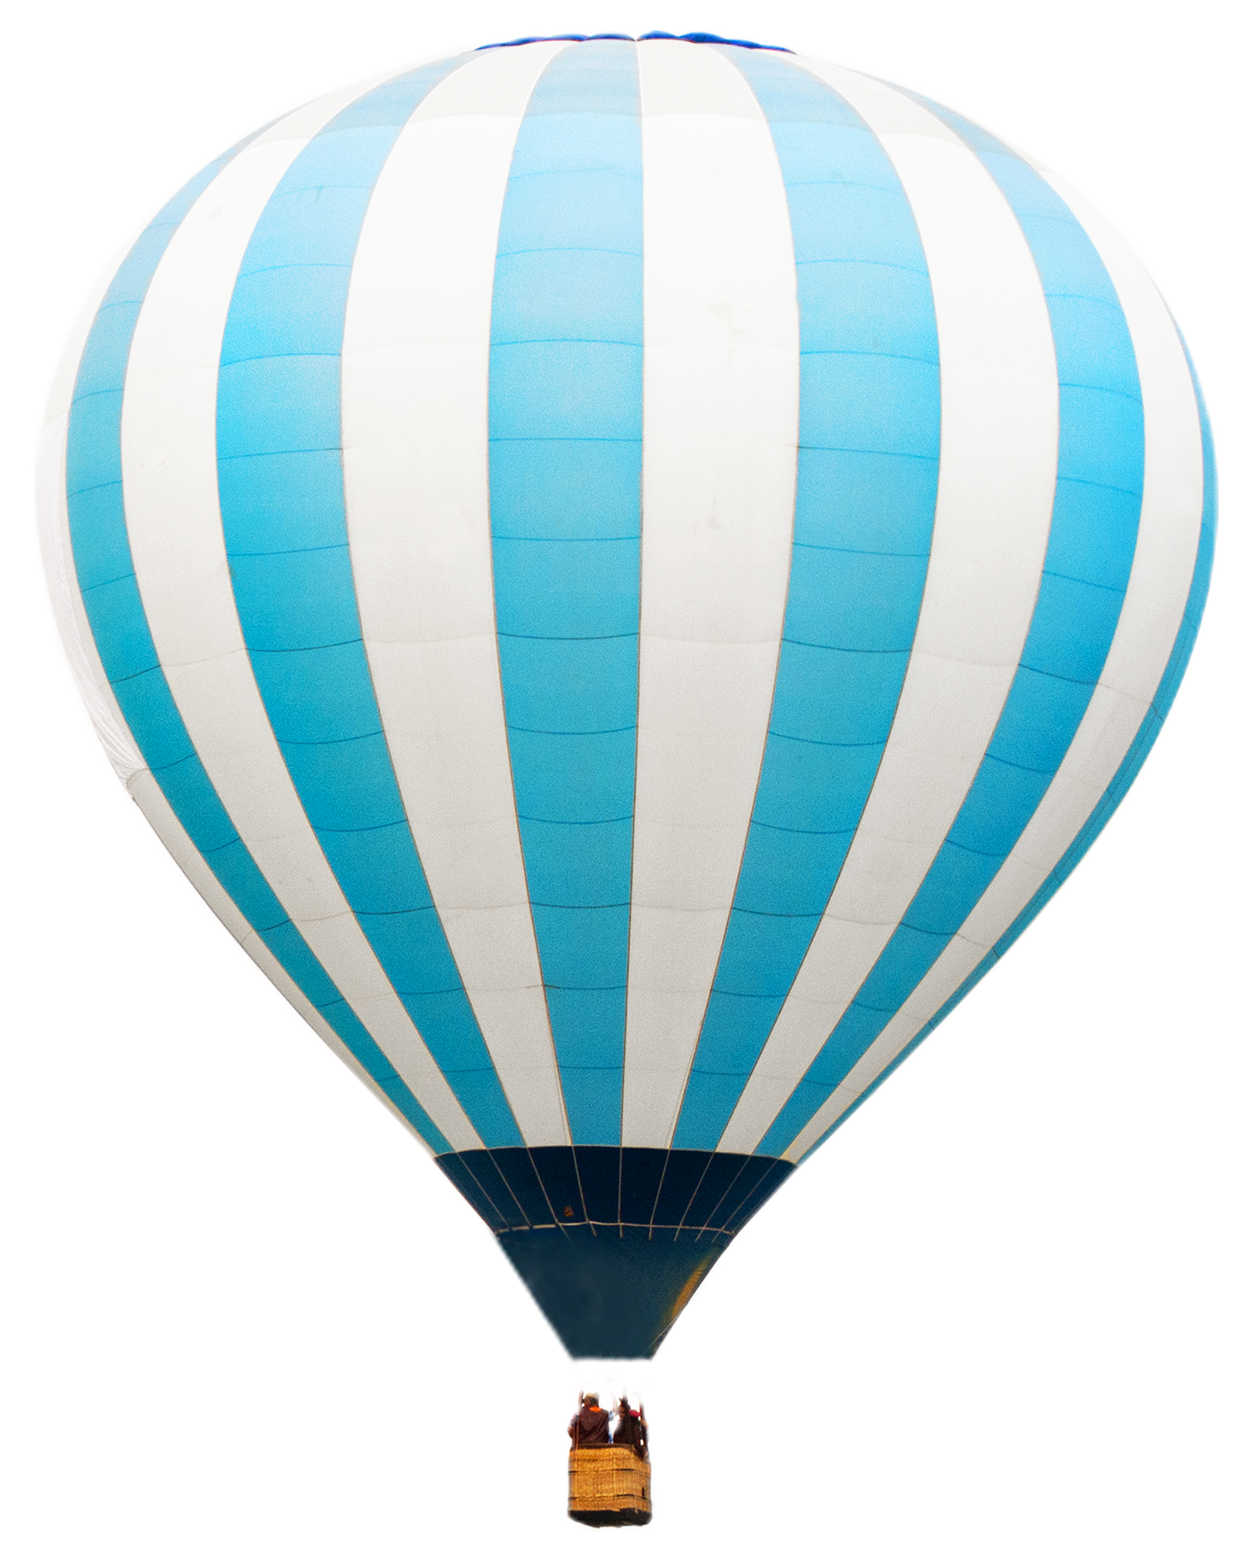 A hot air balloon floating over a cloud